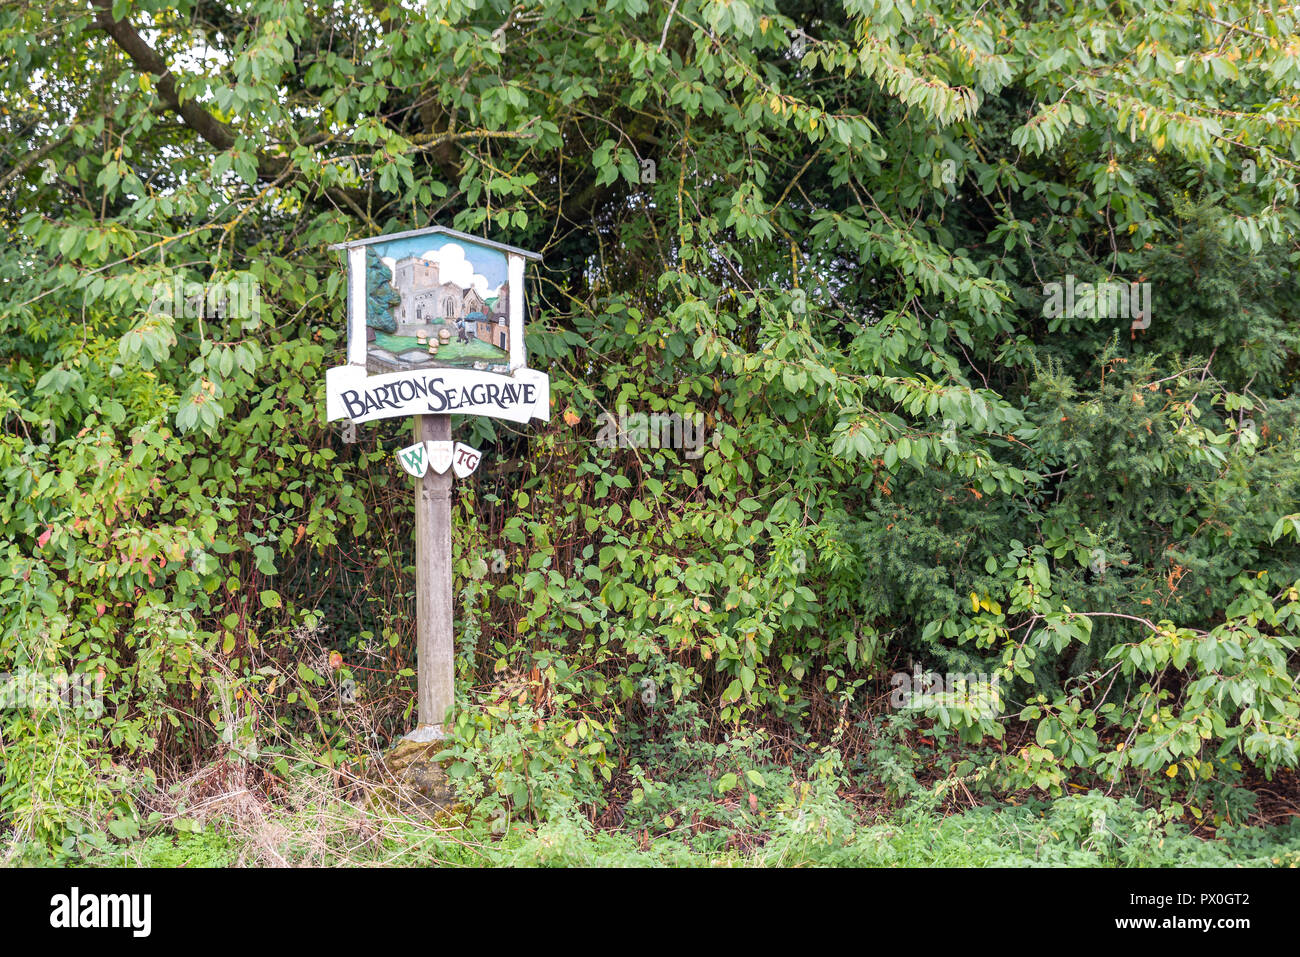 Barton Seagrave, UK - Oct 07, 2018: Day view barton seagrave village coat of arms. - Stock Image